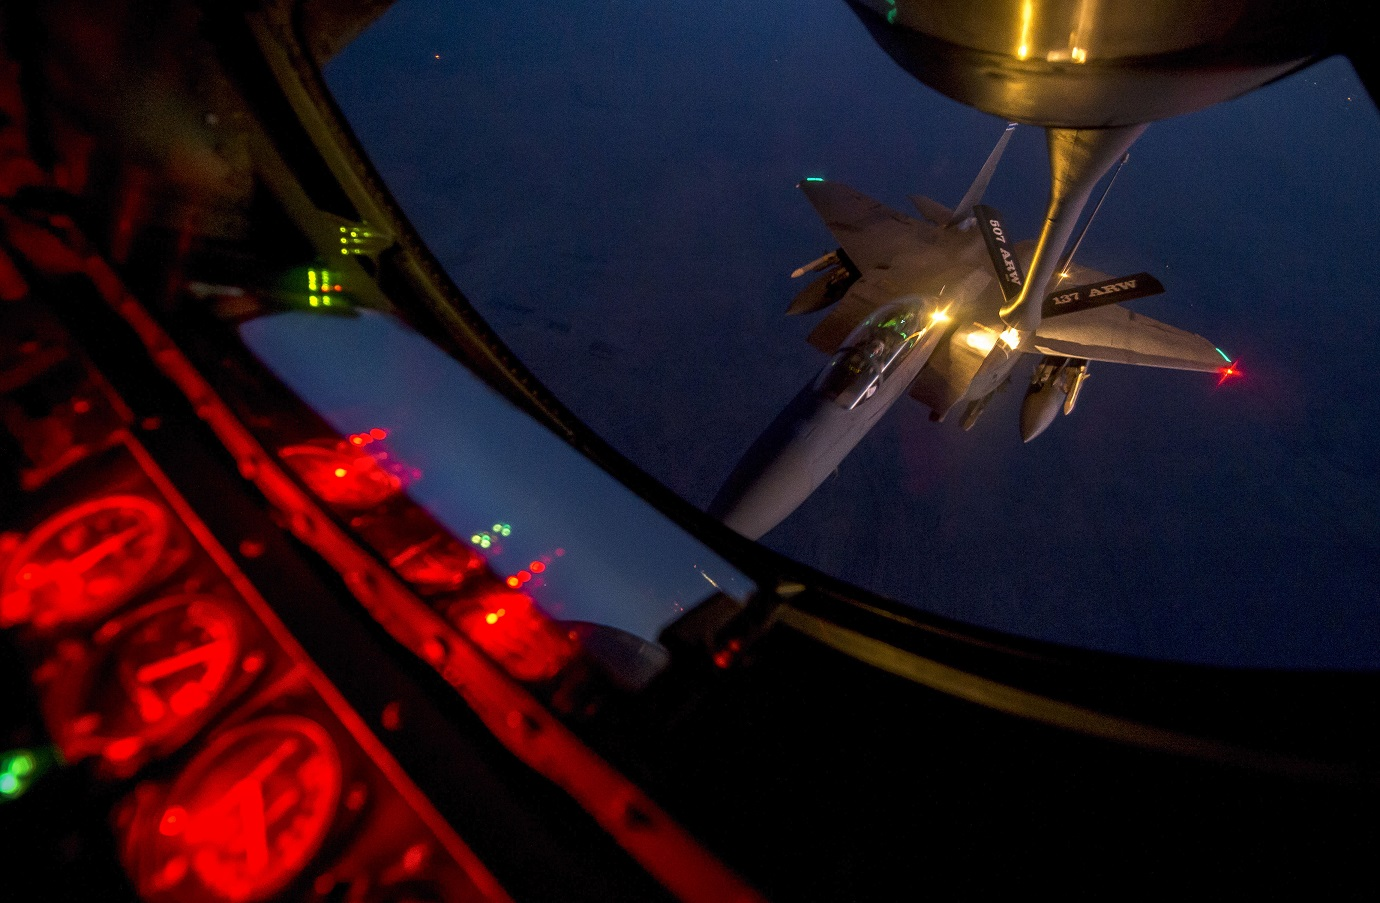 Airstrikes against ISIS hit all-time high